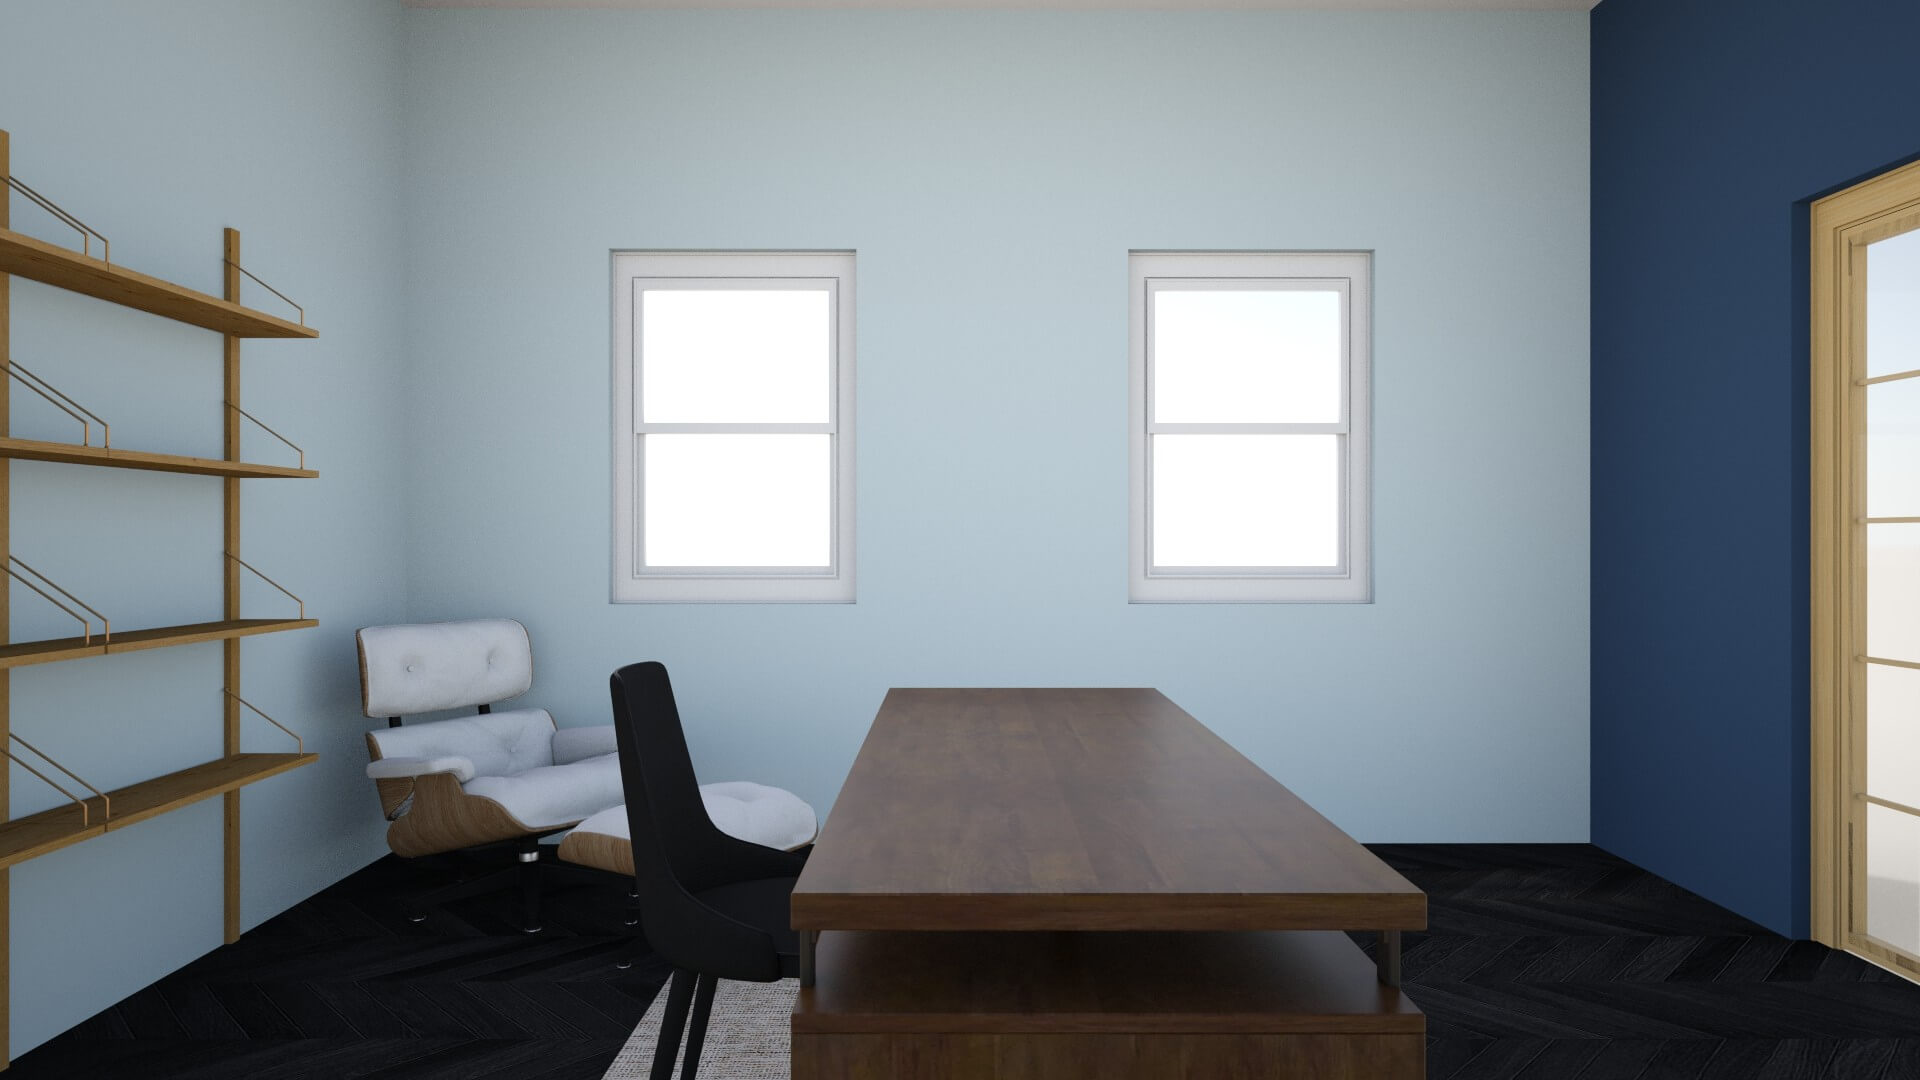 Roomstyler Rendering (Without Scene)